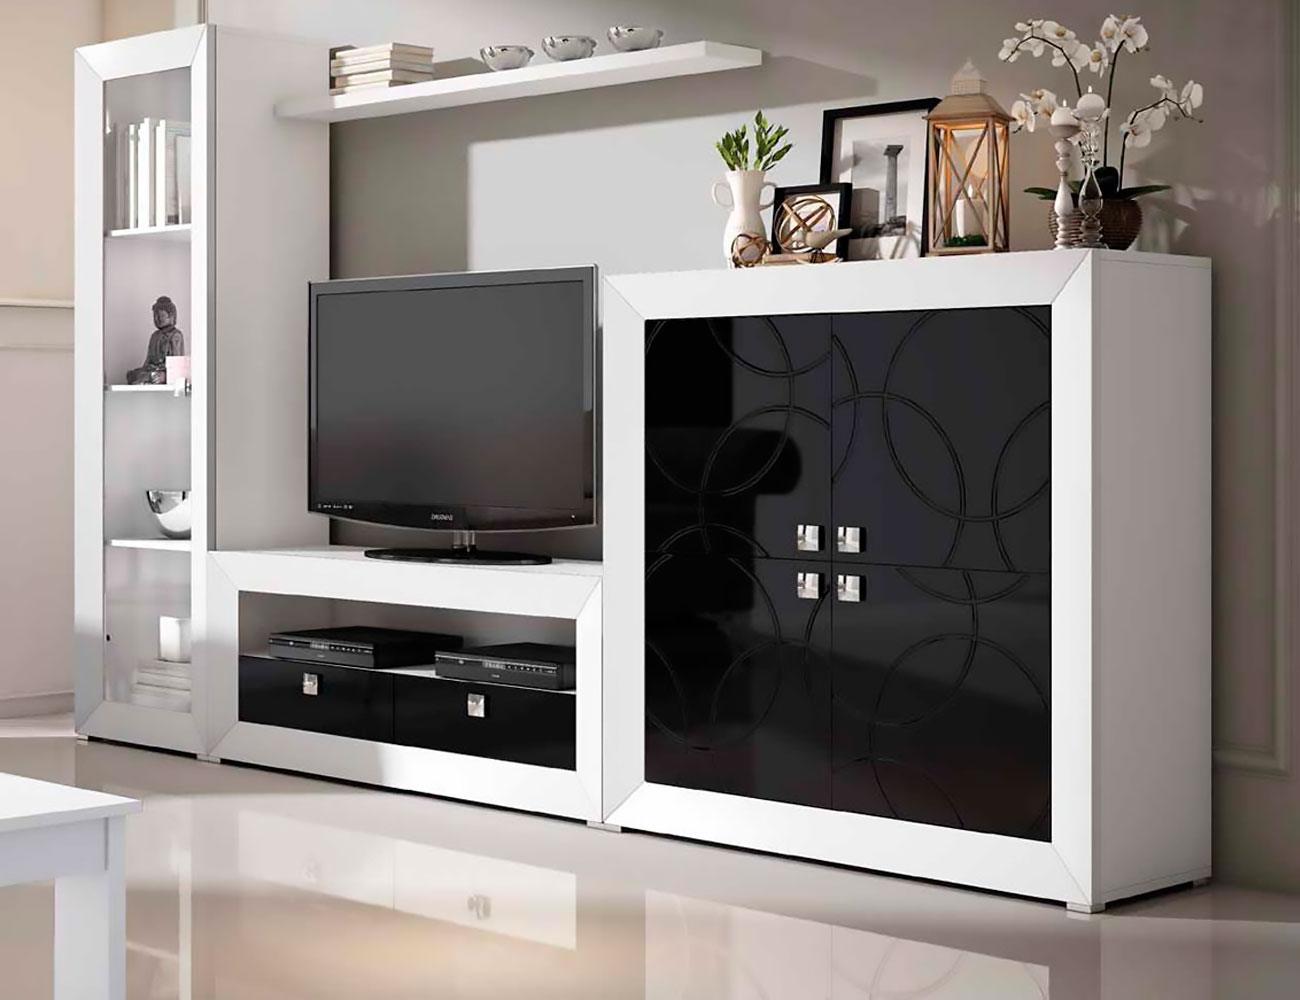 Mueble de sal n modular moderno lacado 2452 factory for Muebles de salon modernos de diseno